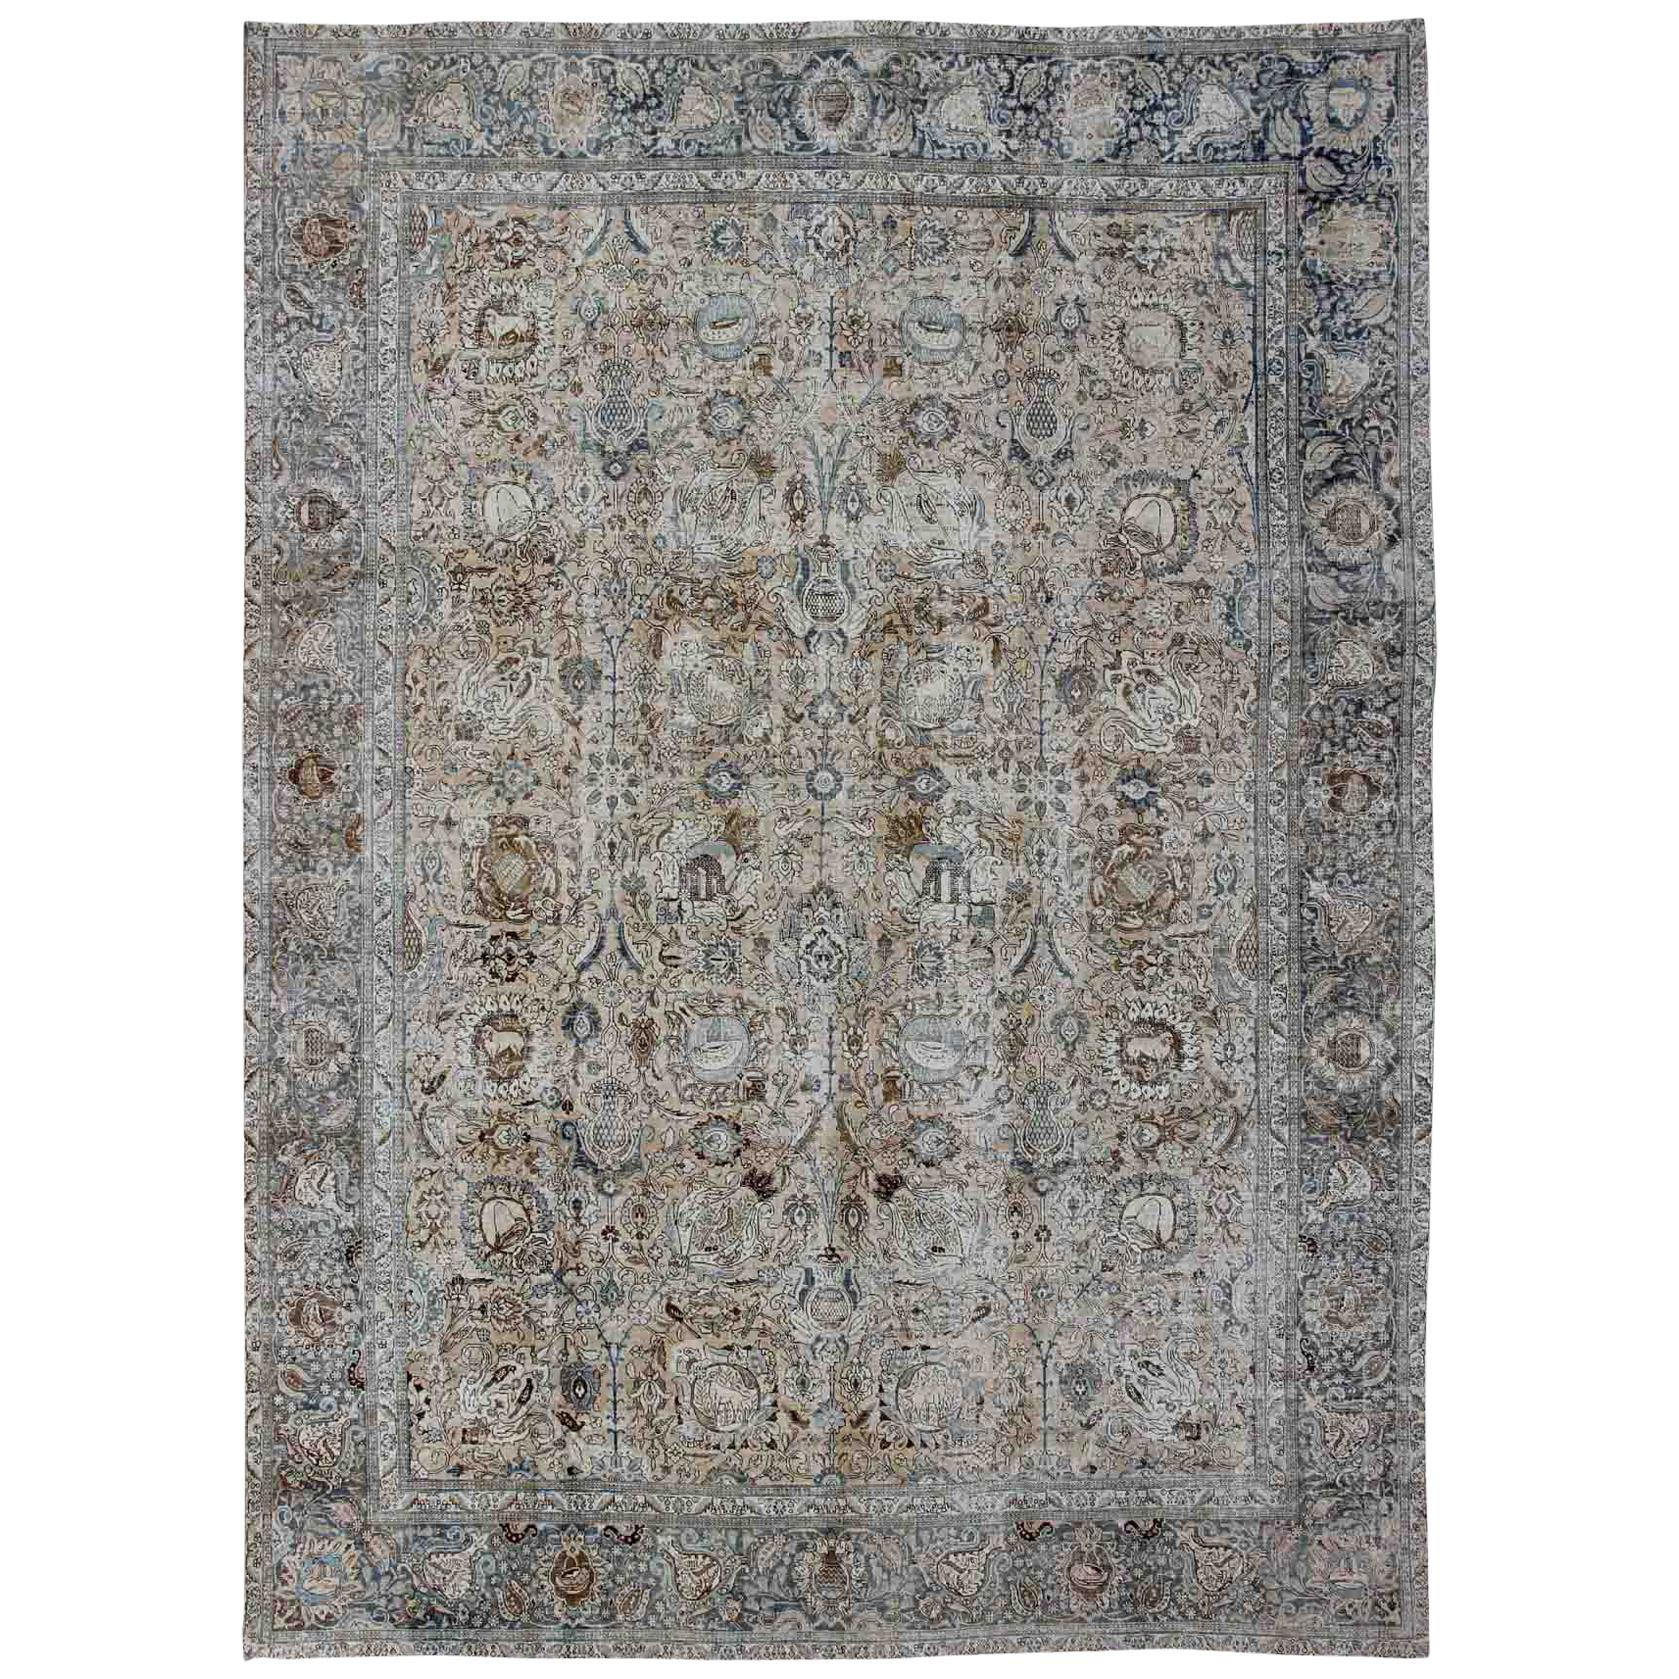 Antique Persian Tabriz Carpet with Geometric Design in Tan and Blue's